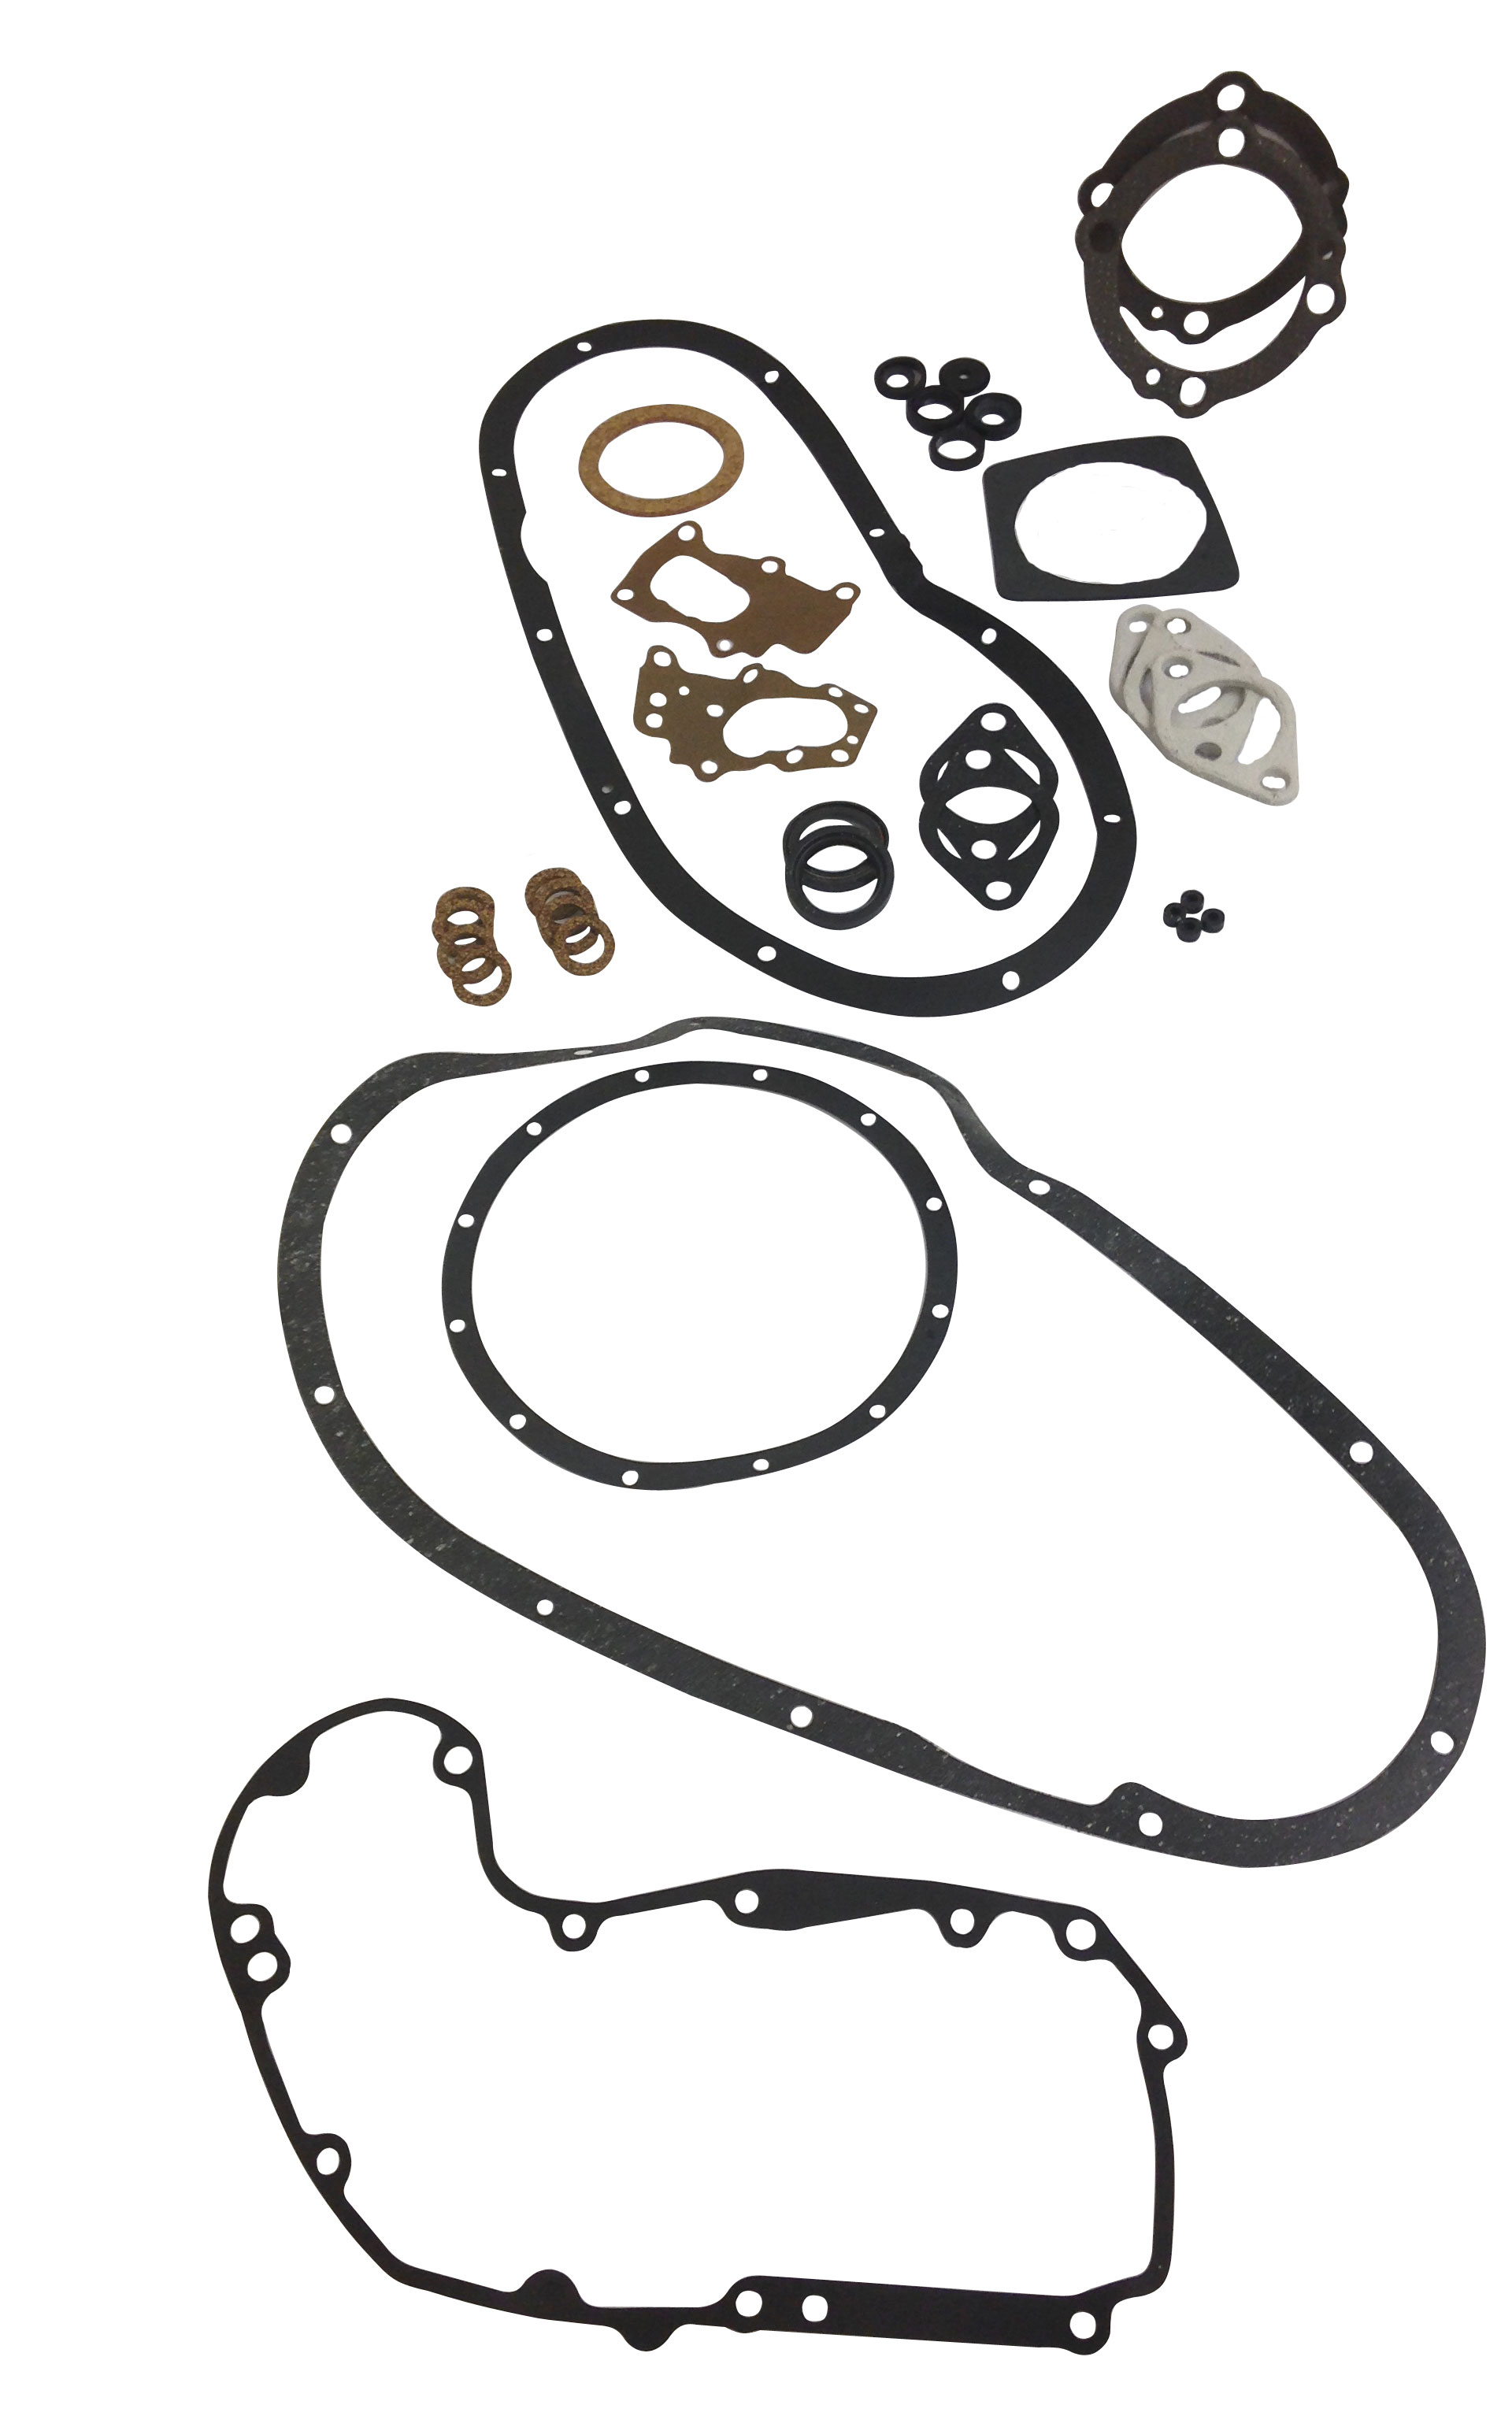 Gasket Set For Harley Davidson Sportster 69